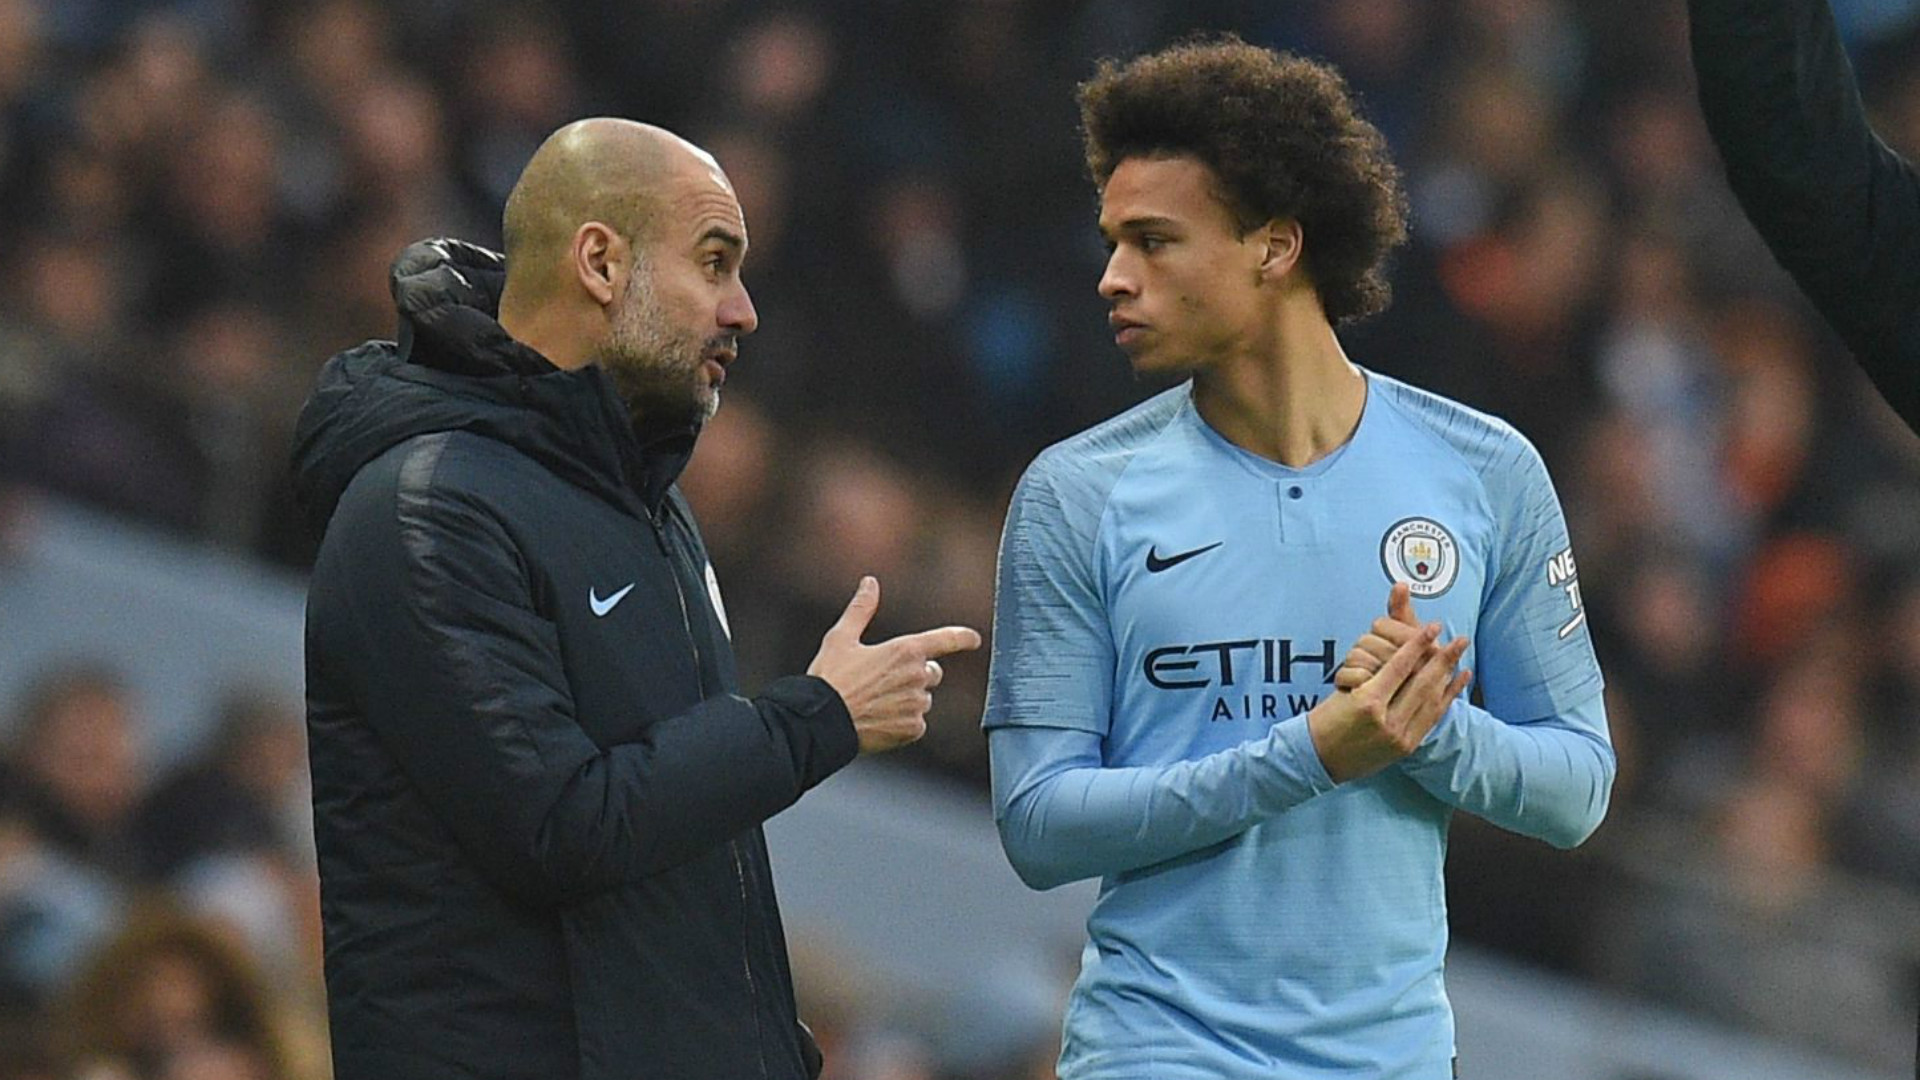 Pep Guardiola defends Manchester City tactics in Tottenham defeat